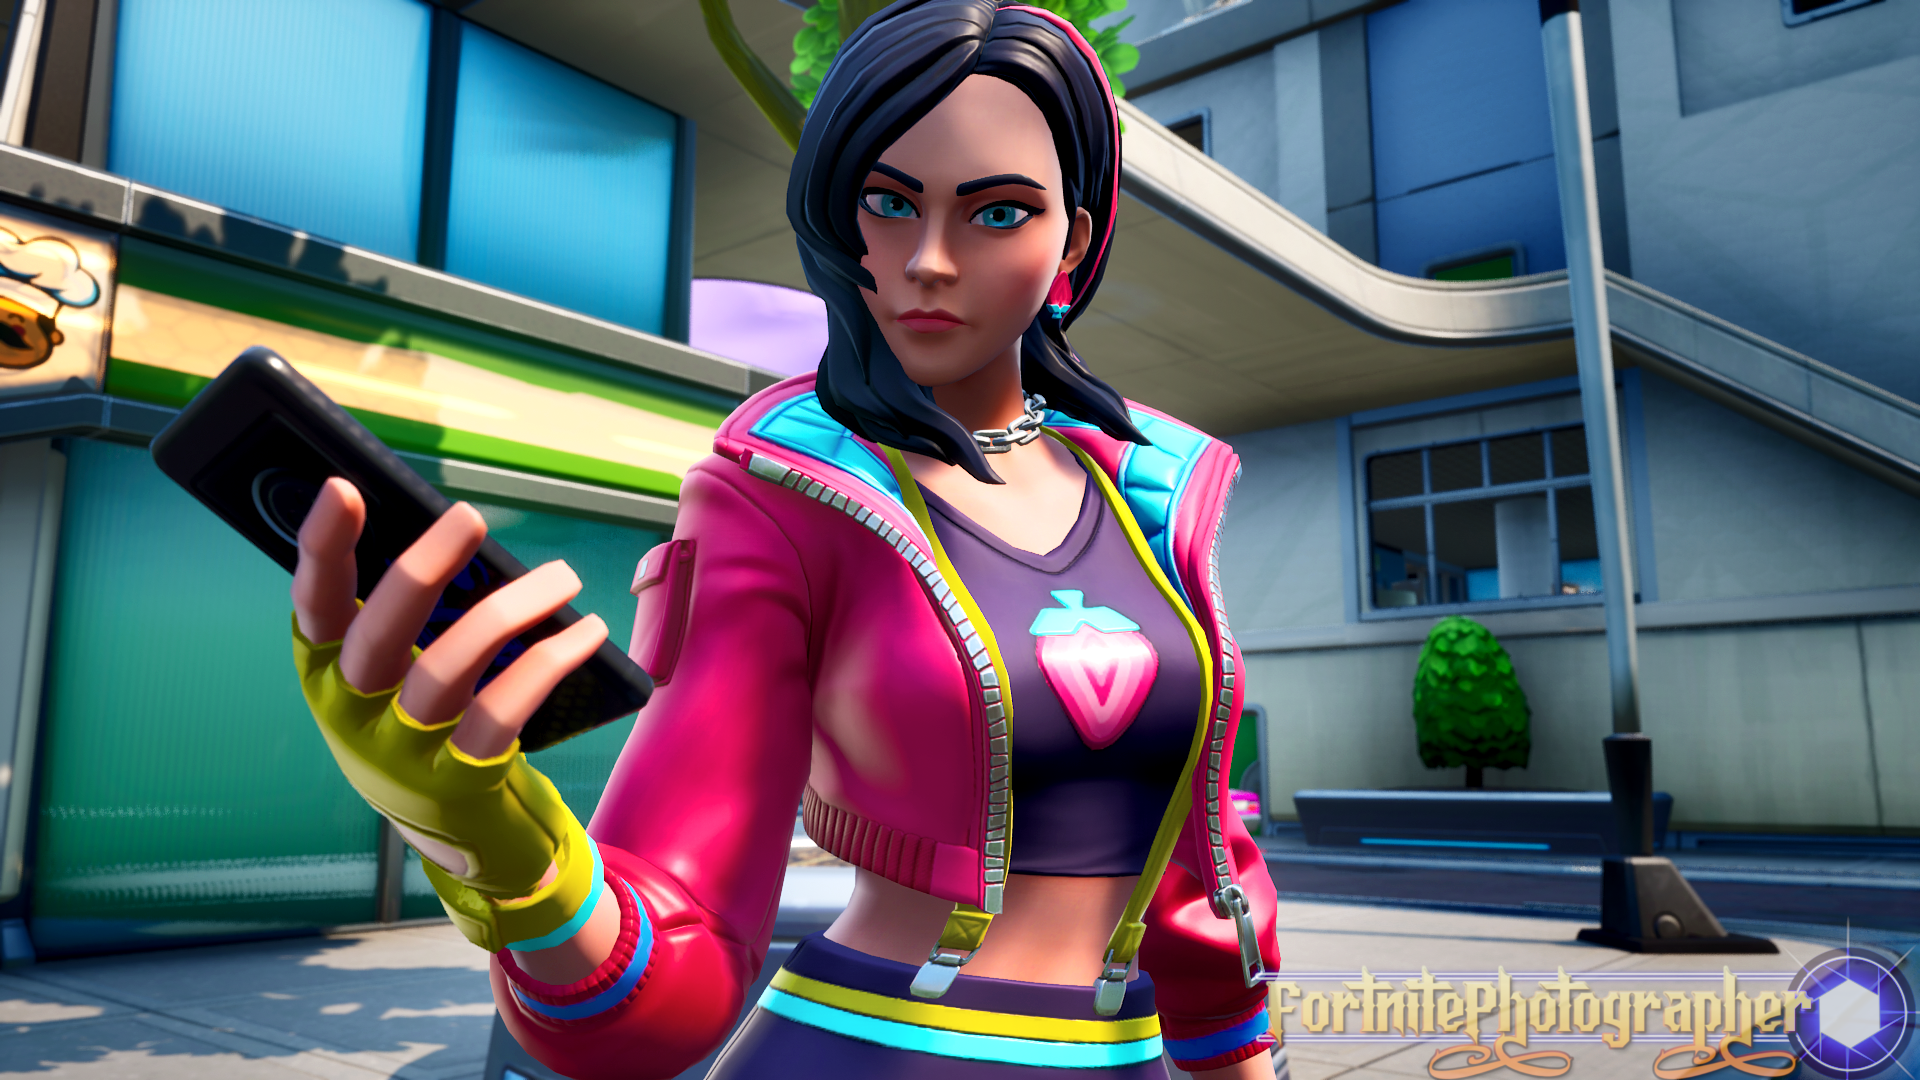 From The Future Is Rox The Best Outfit Of This Pass Rox Set 01 1 4 Fnphootographer On Twitter Fortnite Boys Wallpaper Youtube Banners Cool Outfits